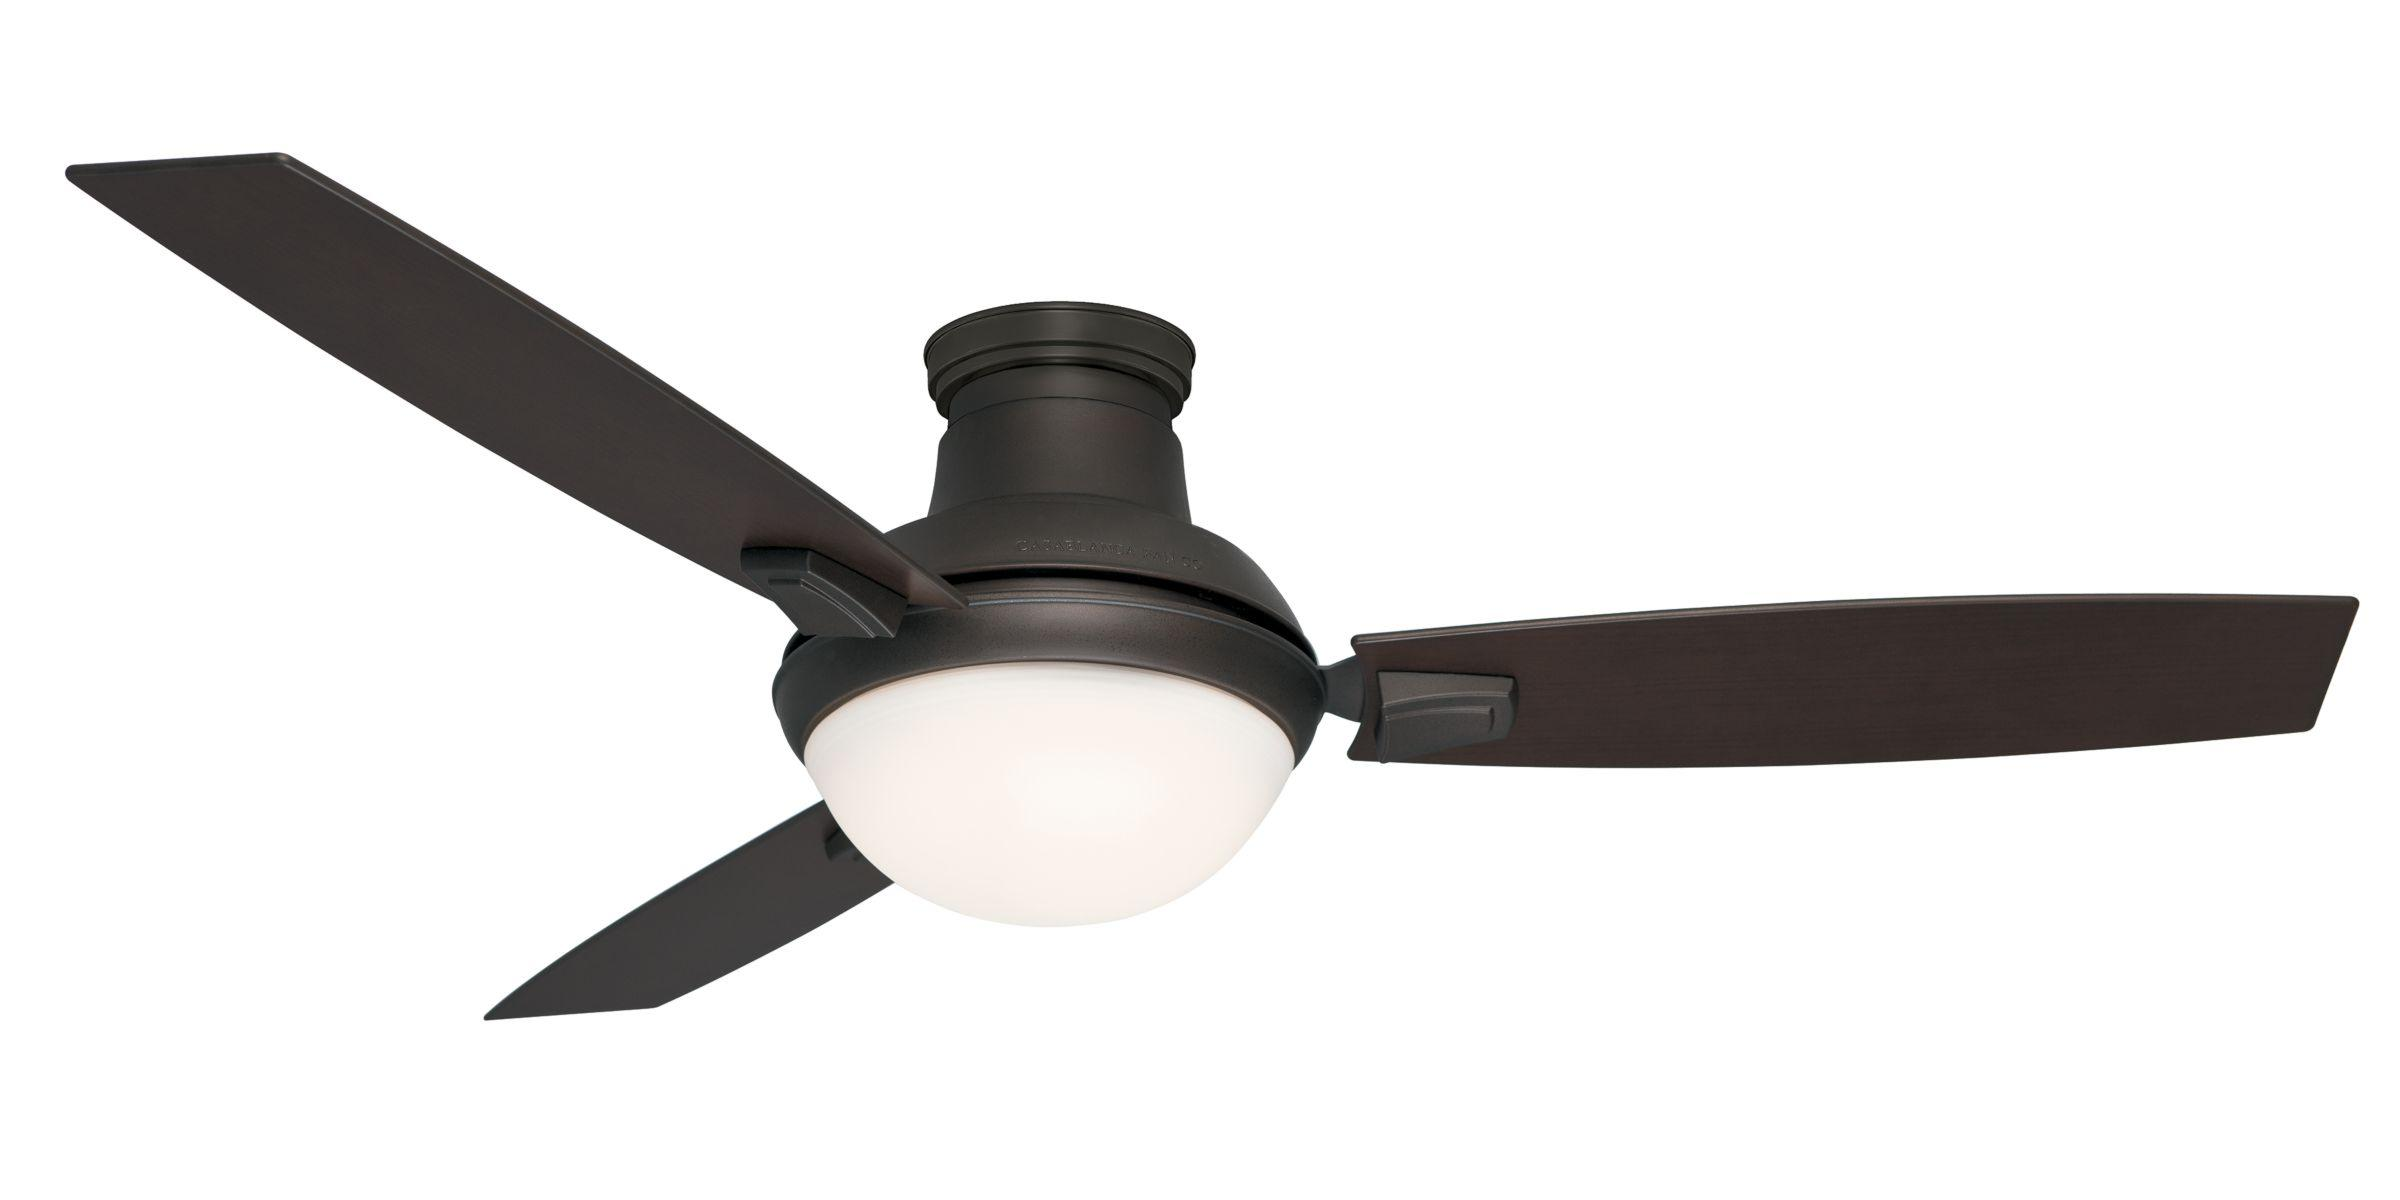 about verambelles awesome ideas ceiling battery fan powered